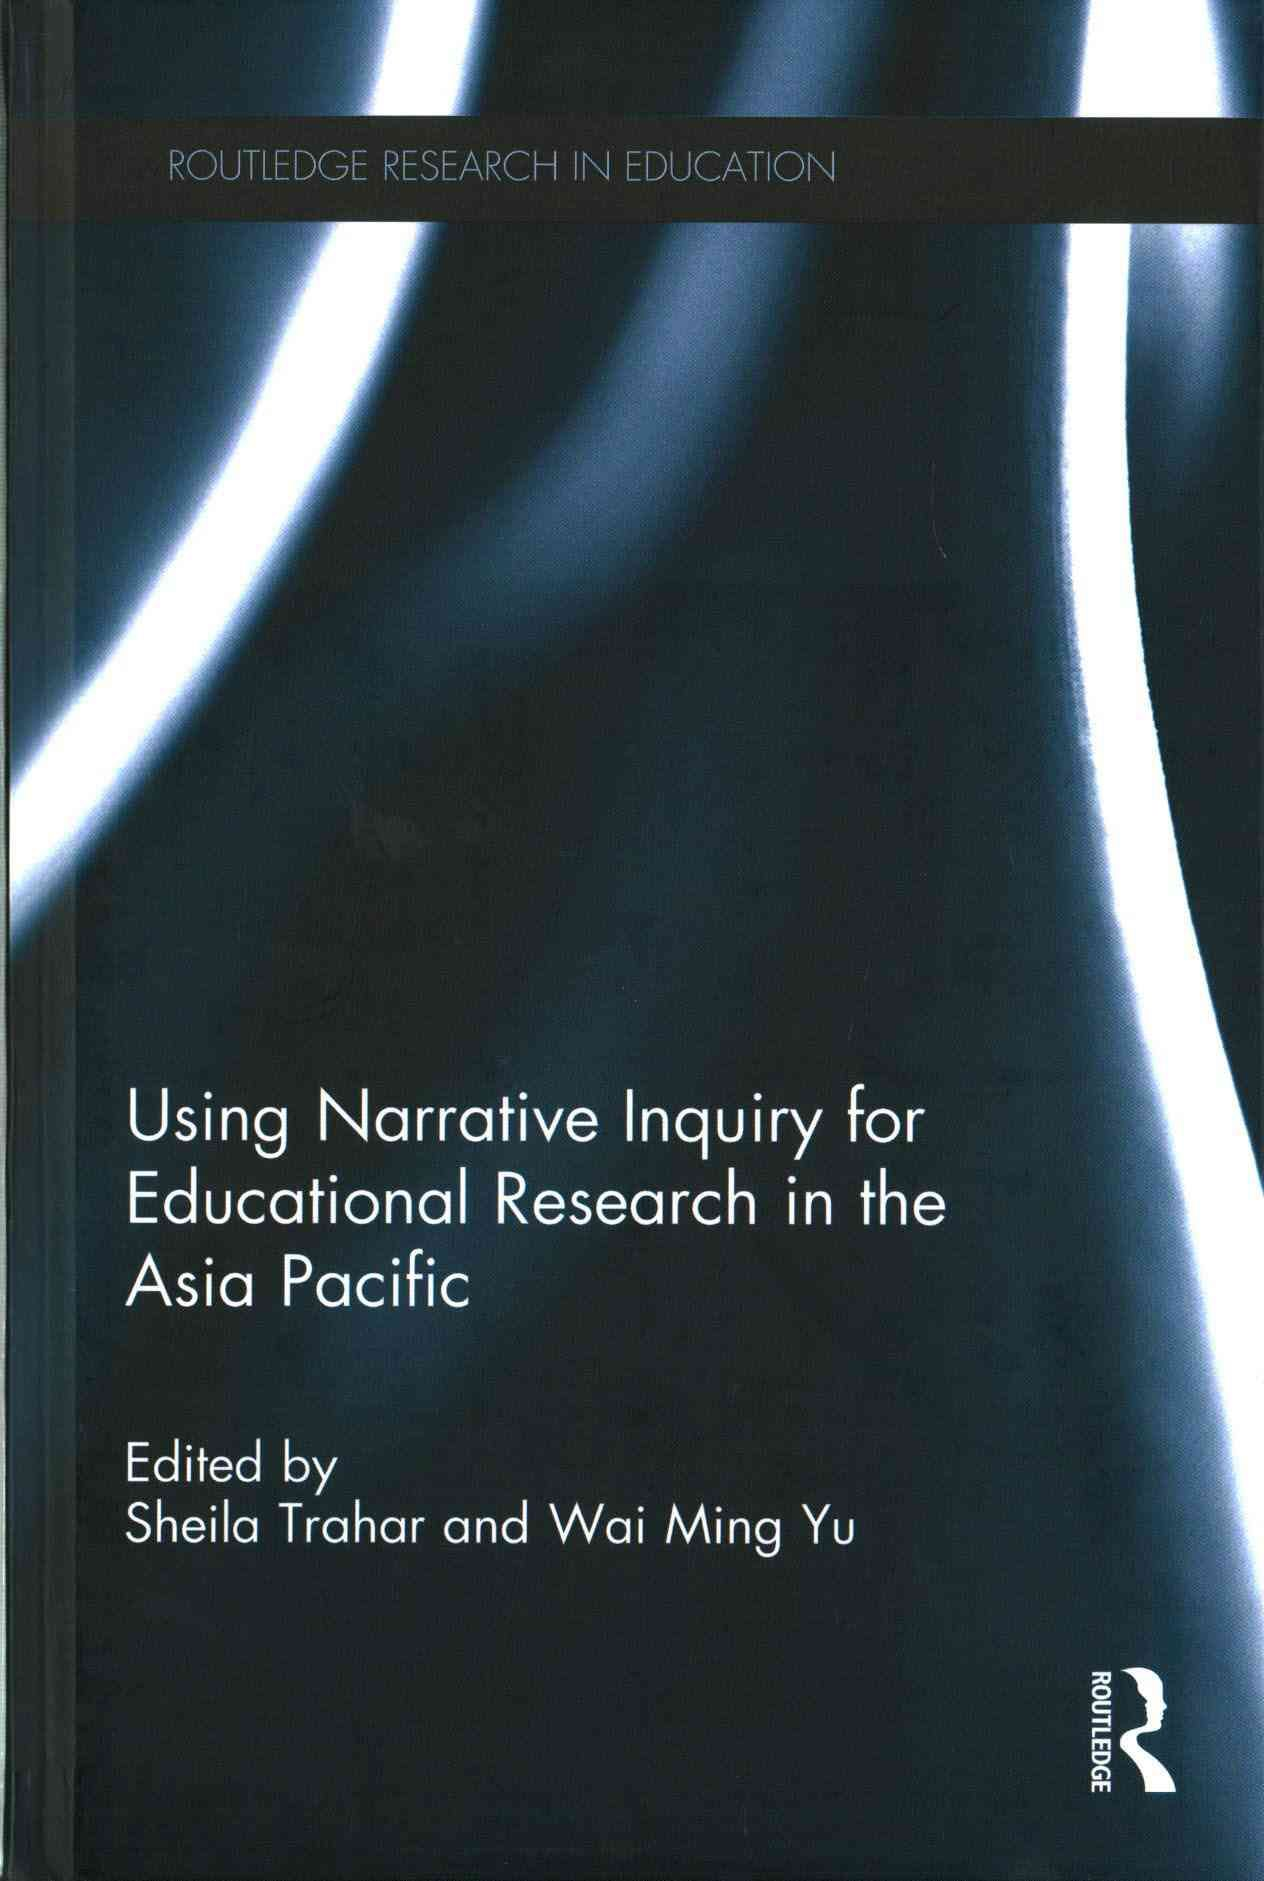 Using Narrative Inquiry for Educational Research in the Asia Pacific